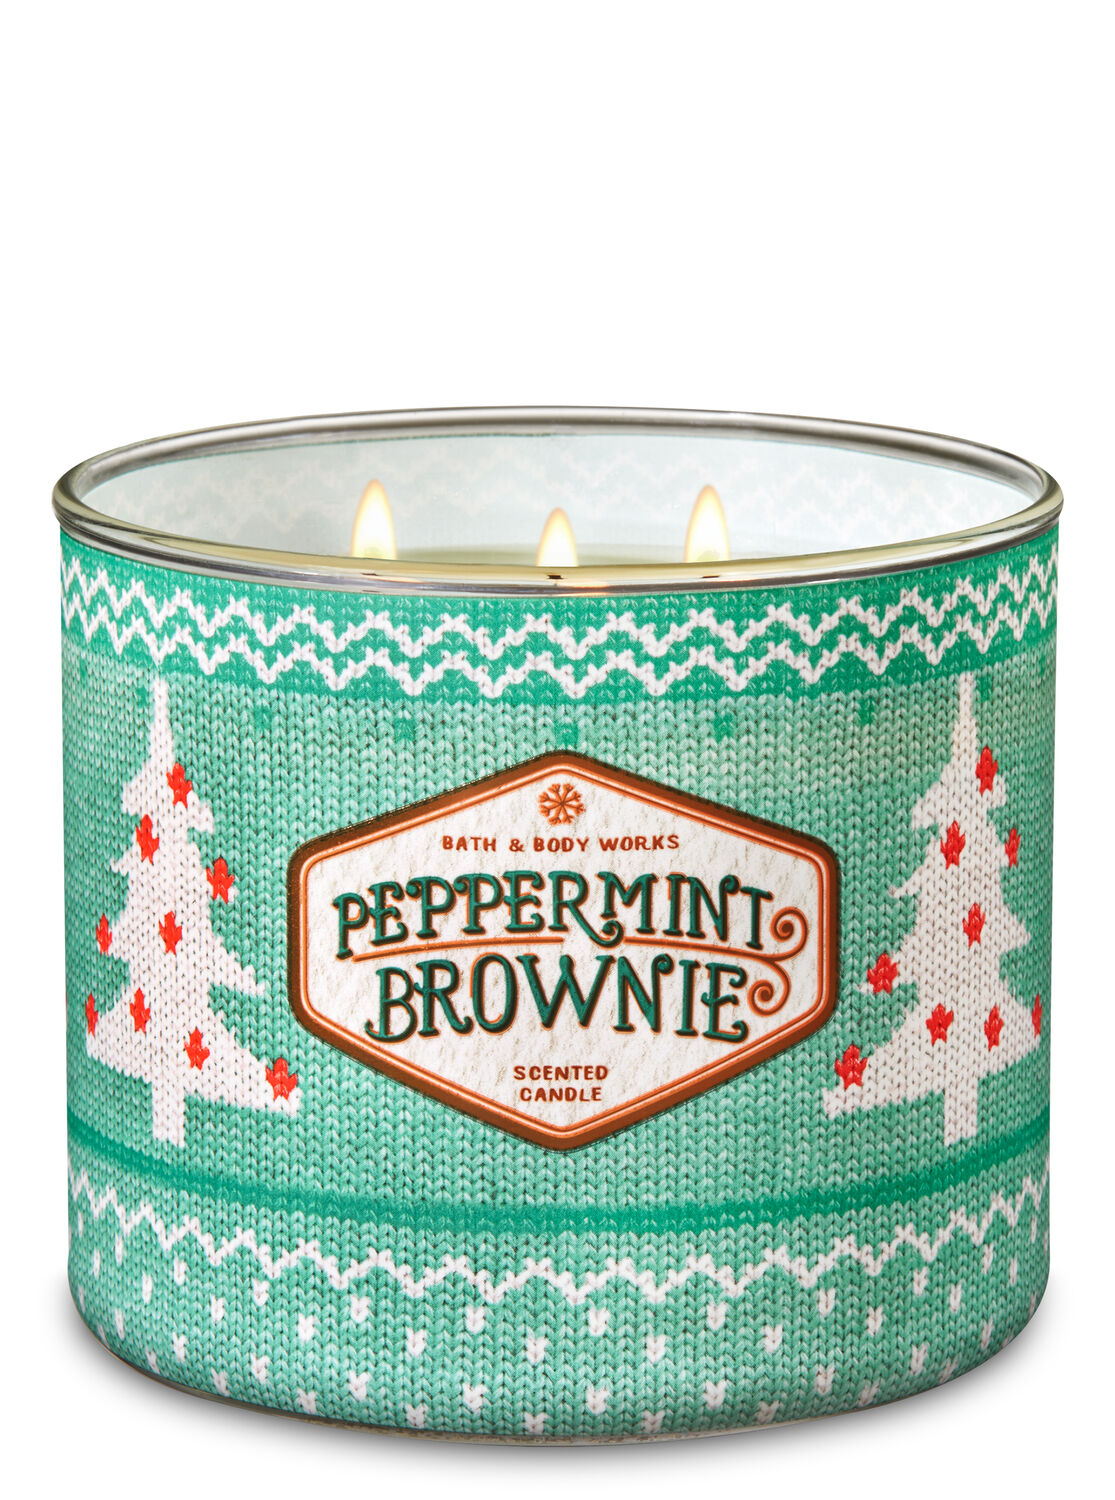 Peppermint Brownie 3-Wick Candle - Bath And Body Works